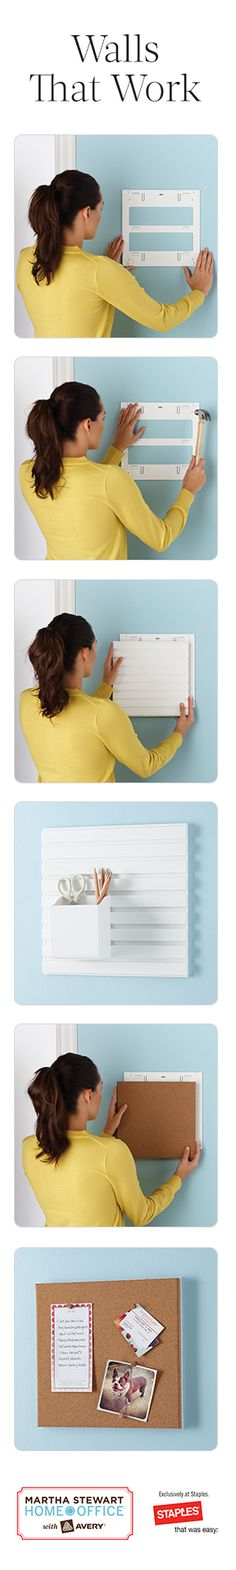 Get organized with wall manager solutions that are easy to install and customize.